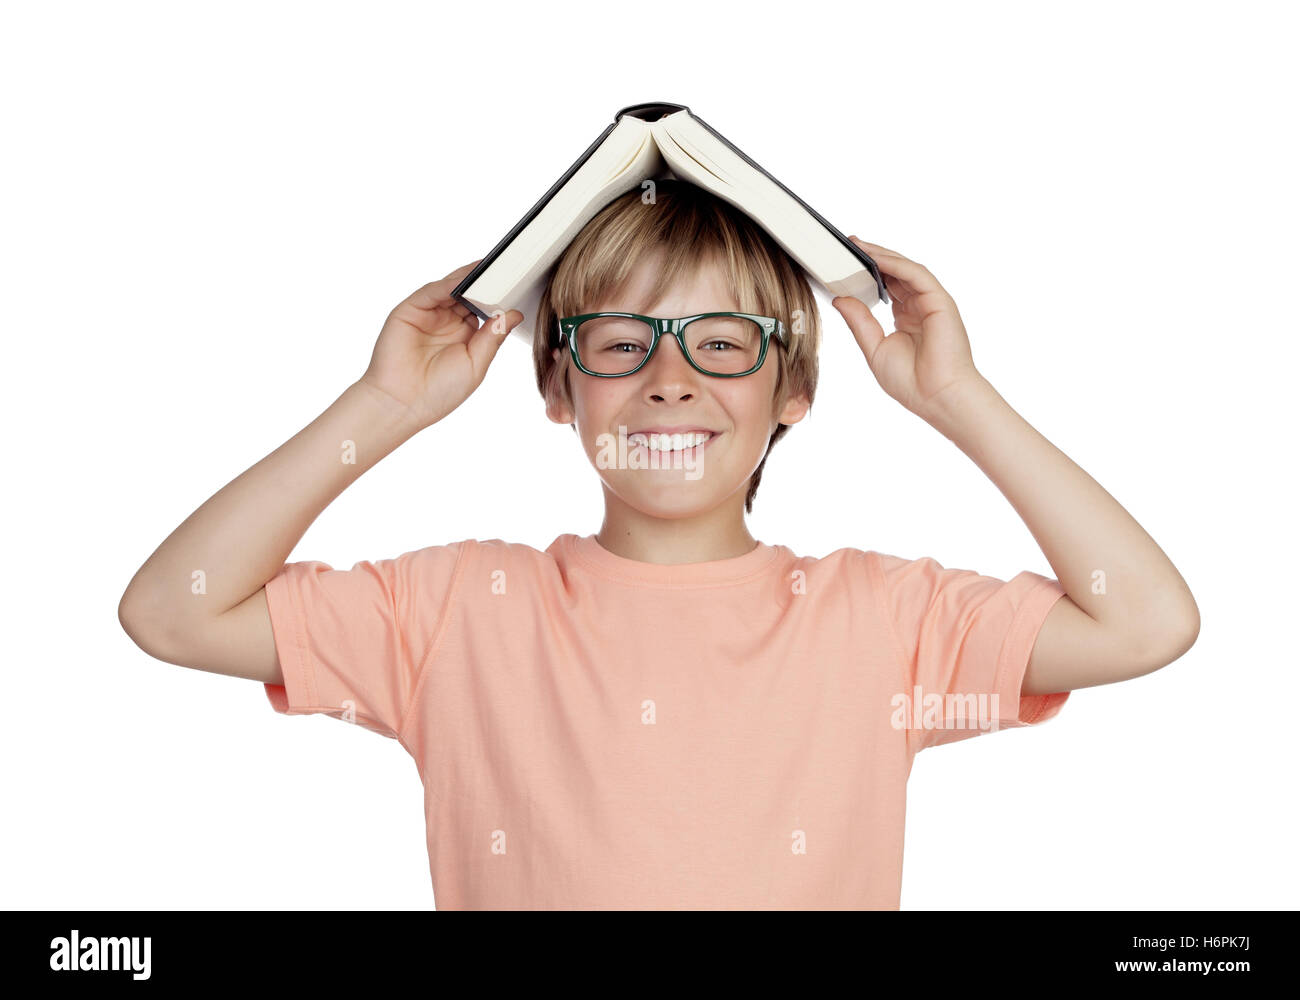 Preteen boy with a book and glasses isolated on white background - Stock Image